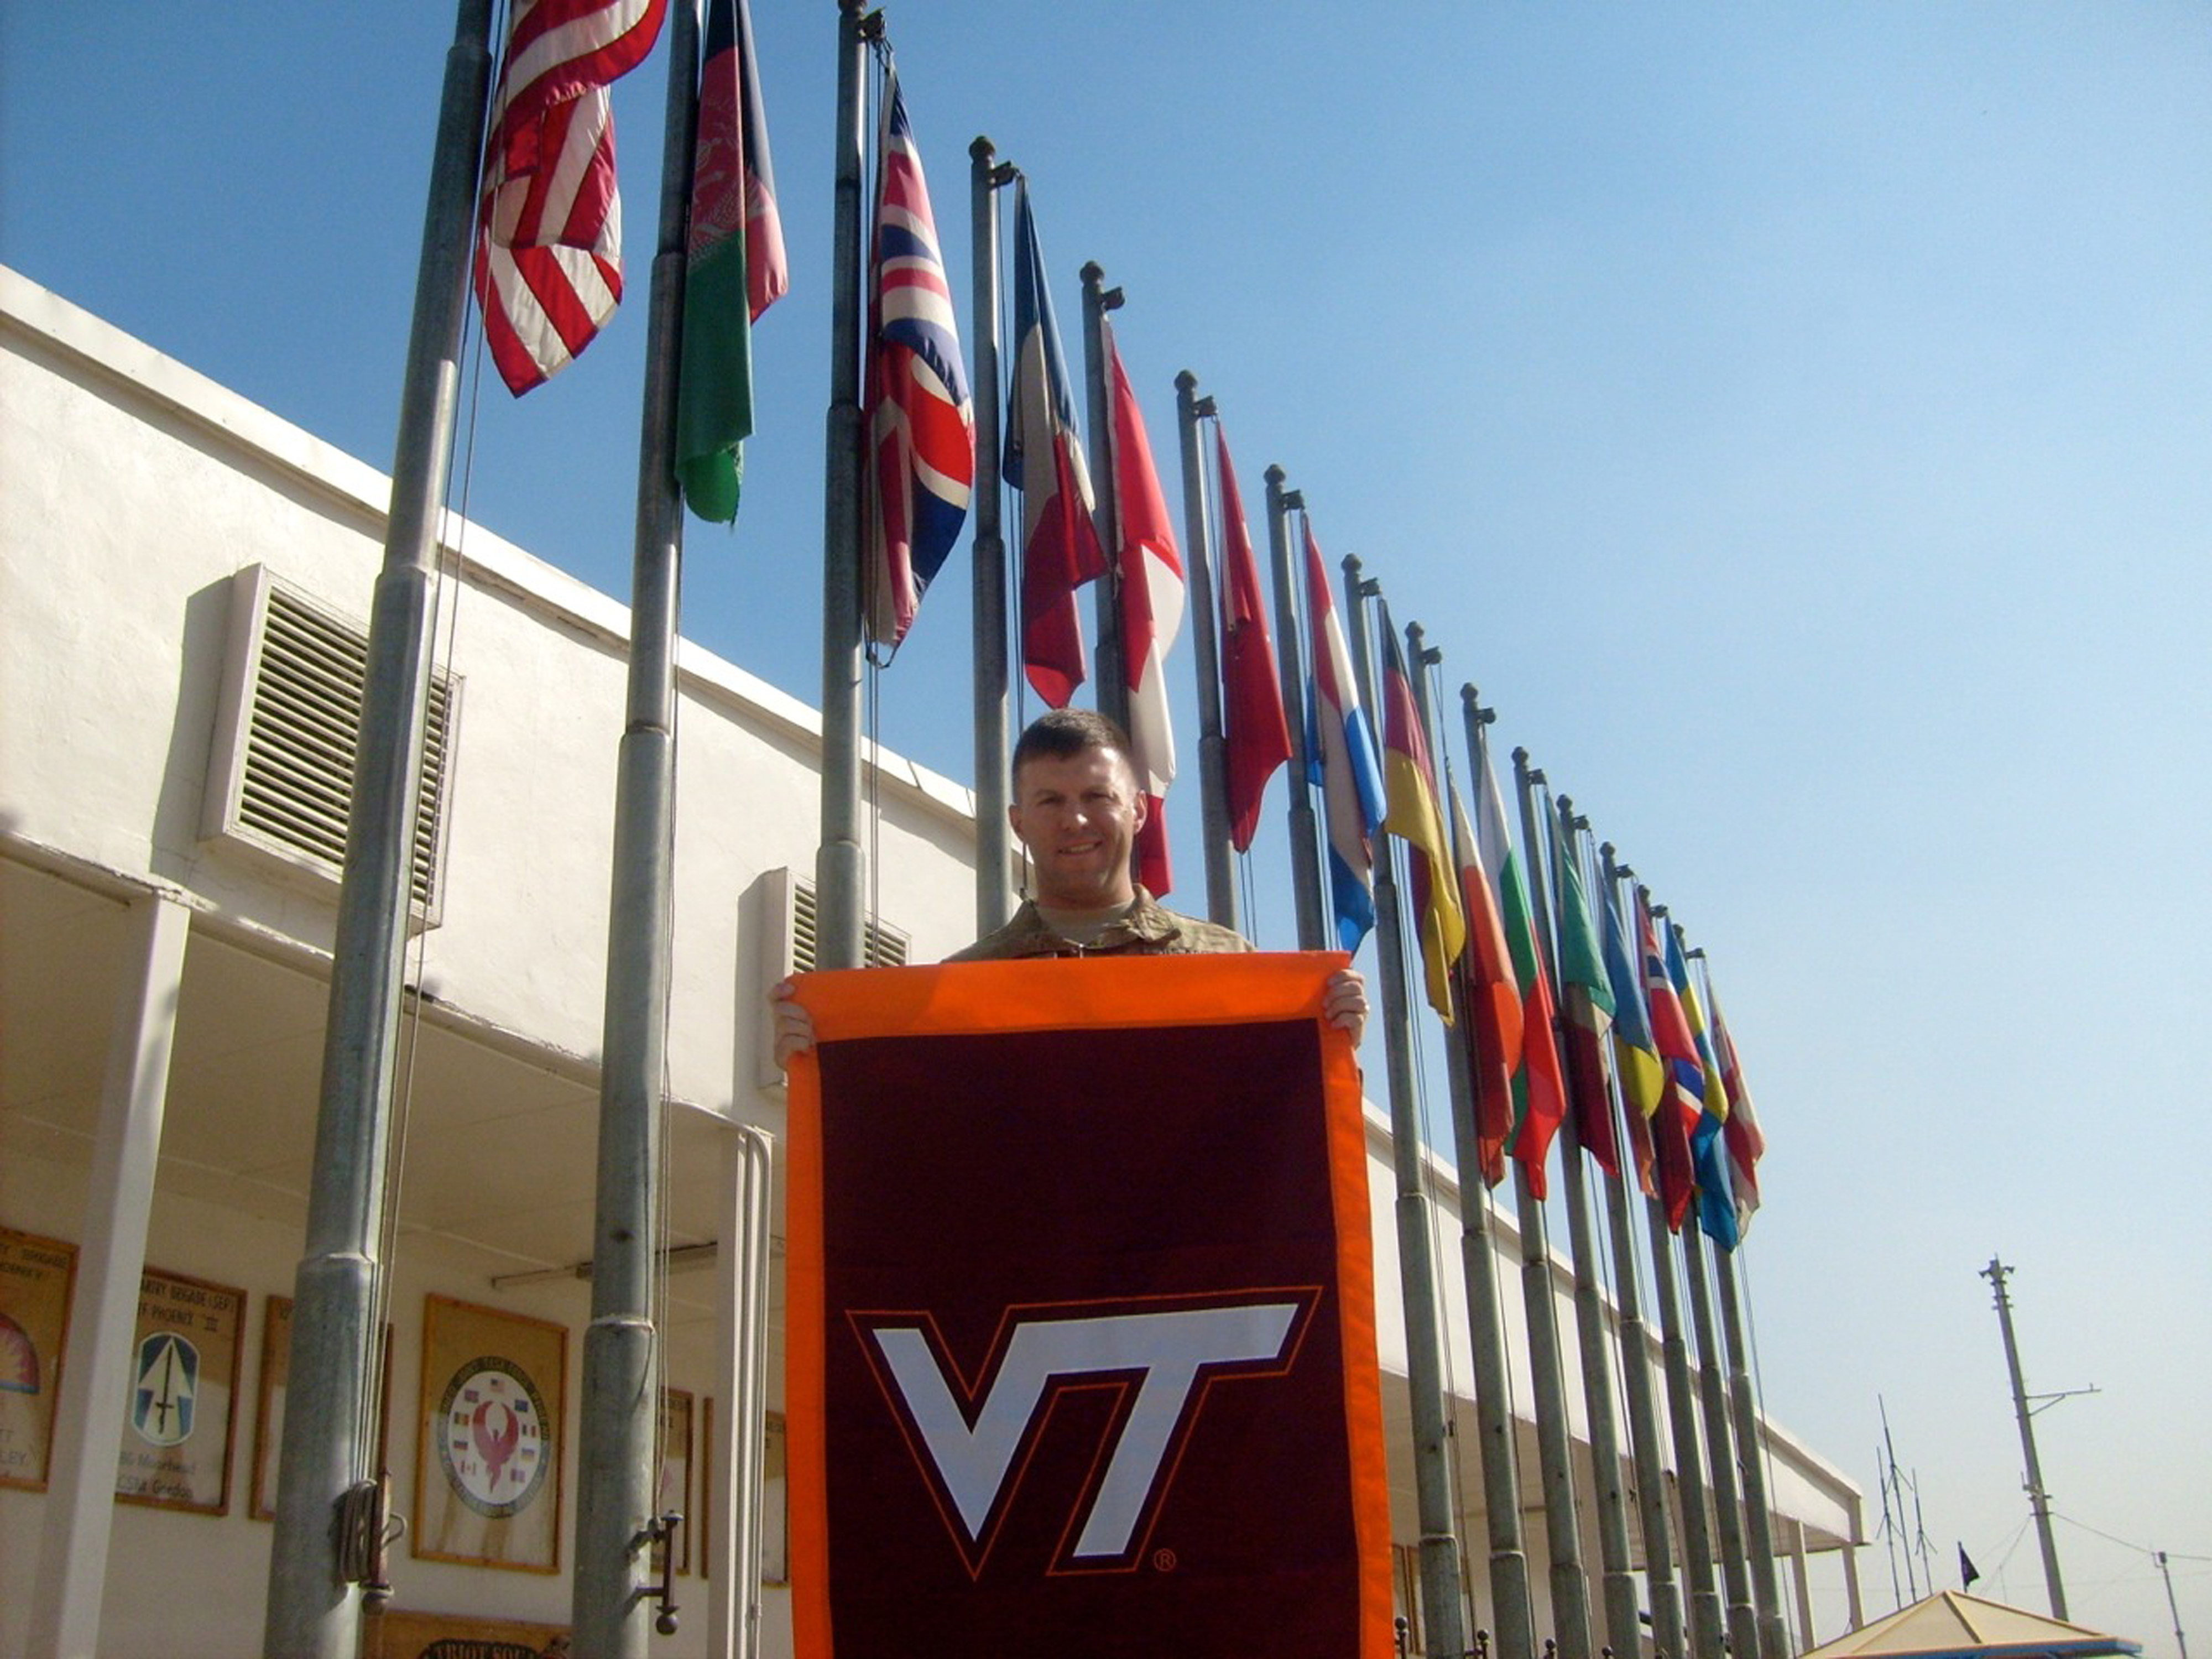 Maj. Ed Skelly, U.S. Army, Virginia Tech Corps of Cadets Class of 1995 while deployed in Afghanistan